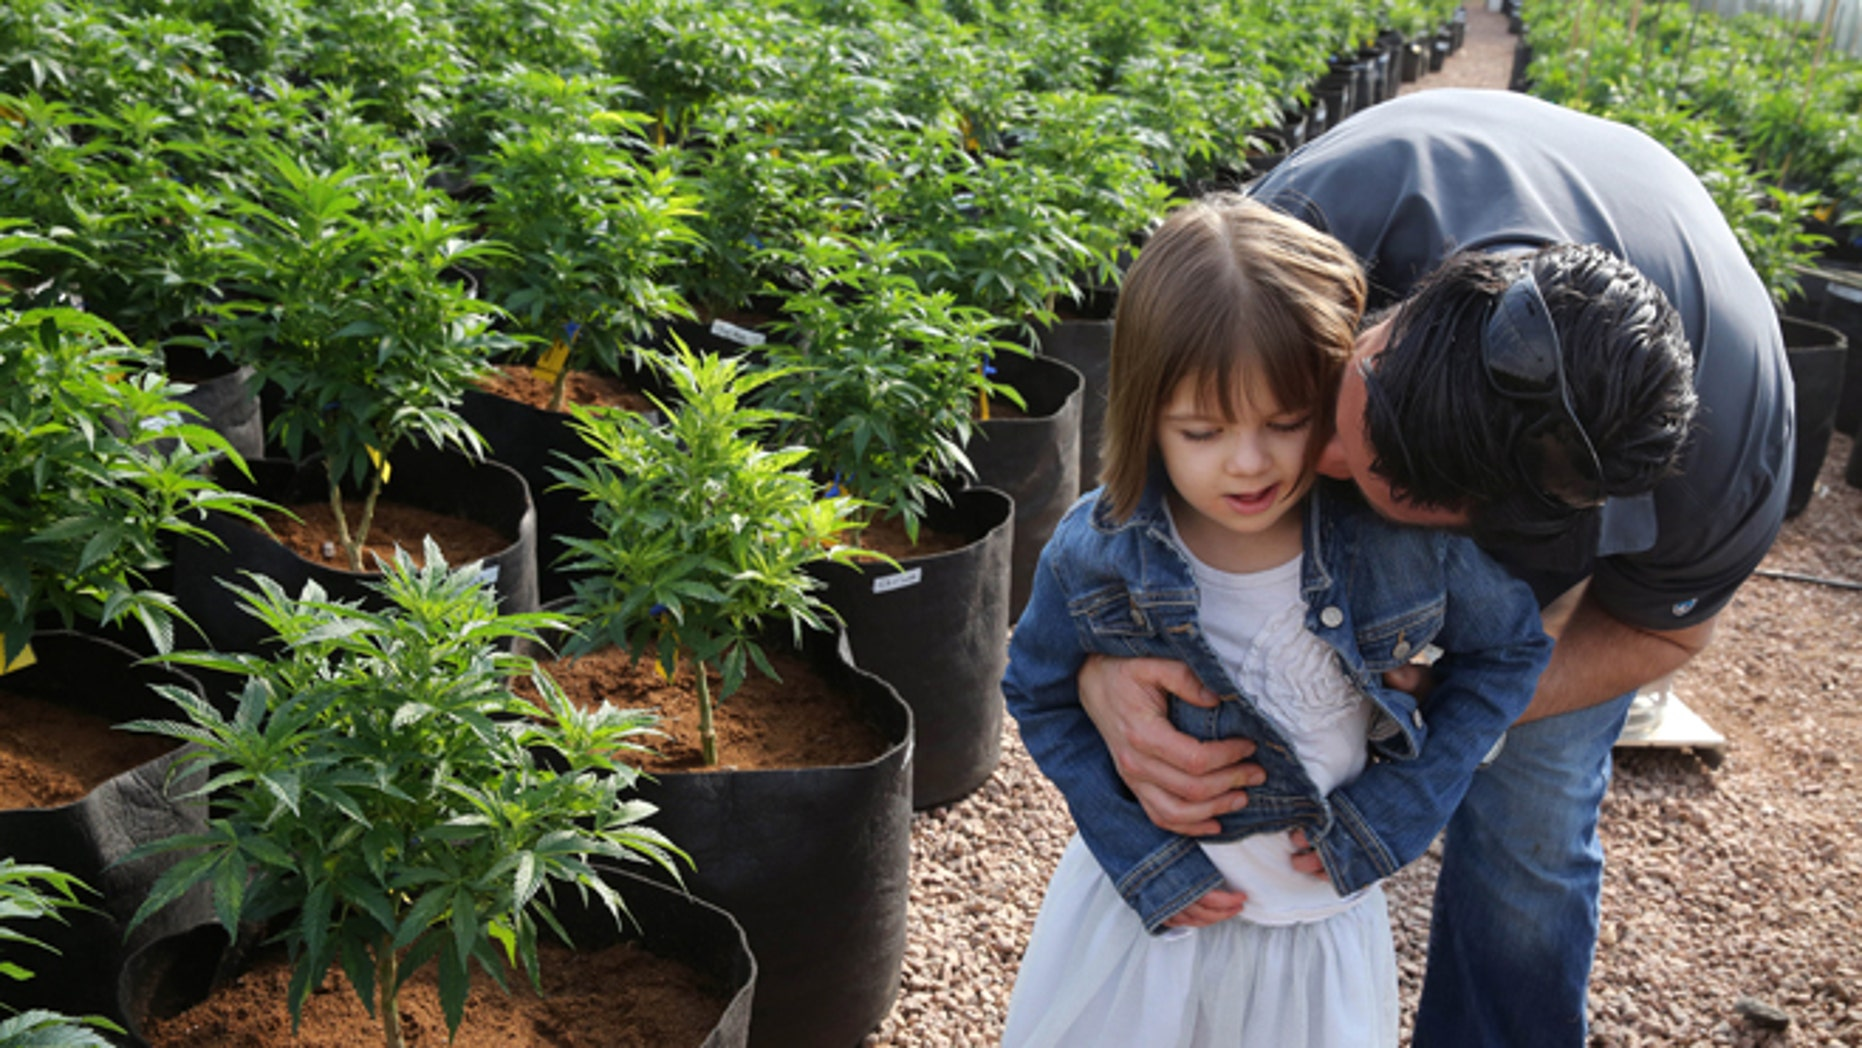 In this Feb. 7, 2014 photo, Matt Figi hugs and tickles his once severely-ill 7-year-old daughter Charlotte, as they wander around inside a greenhouse for a special strain of medical marijuana known as Charlotte's Web, which was named after the girl early in her treatment, in a remote spot in the mountains west of Colorado Springs, Colo. A few years ago, Charlotte's doctors were out of ideas to help her. Suffering from a rare disorder known as Dravets syndrome, Charlotte had as many as 300 grand mal seizures a week, was confined to a wheelchair, went into repeated cardiac arrest and could barely speak. Now Charlotte is largely seizure-free, able to walk, talk and feed herself, with her parents attributing her dramatic improvement to this strain of medical cannabis. (AP Photo/Brennan Linsley)